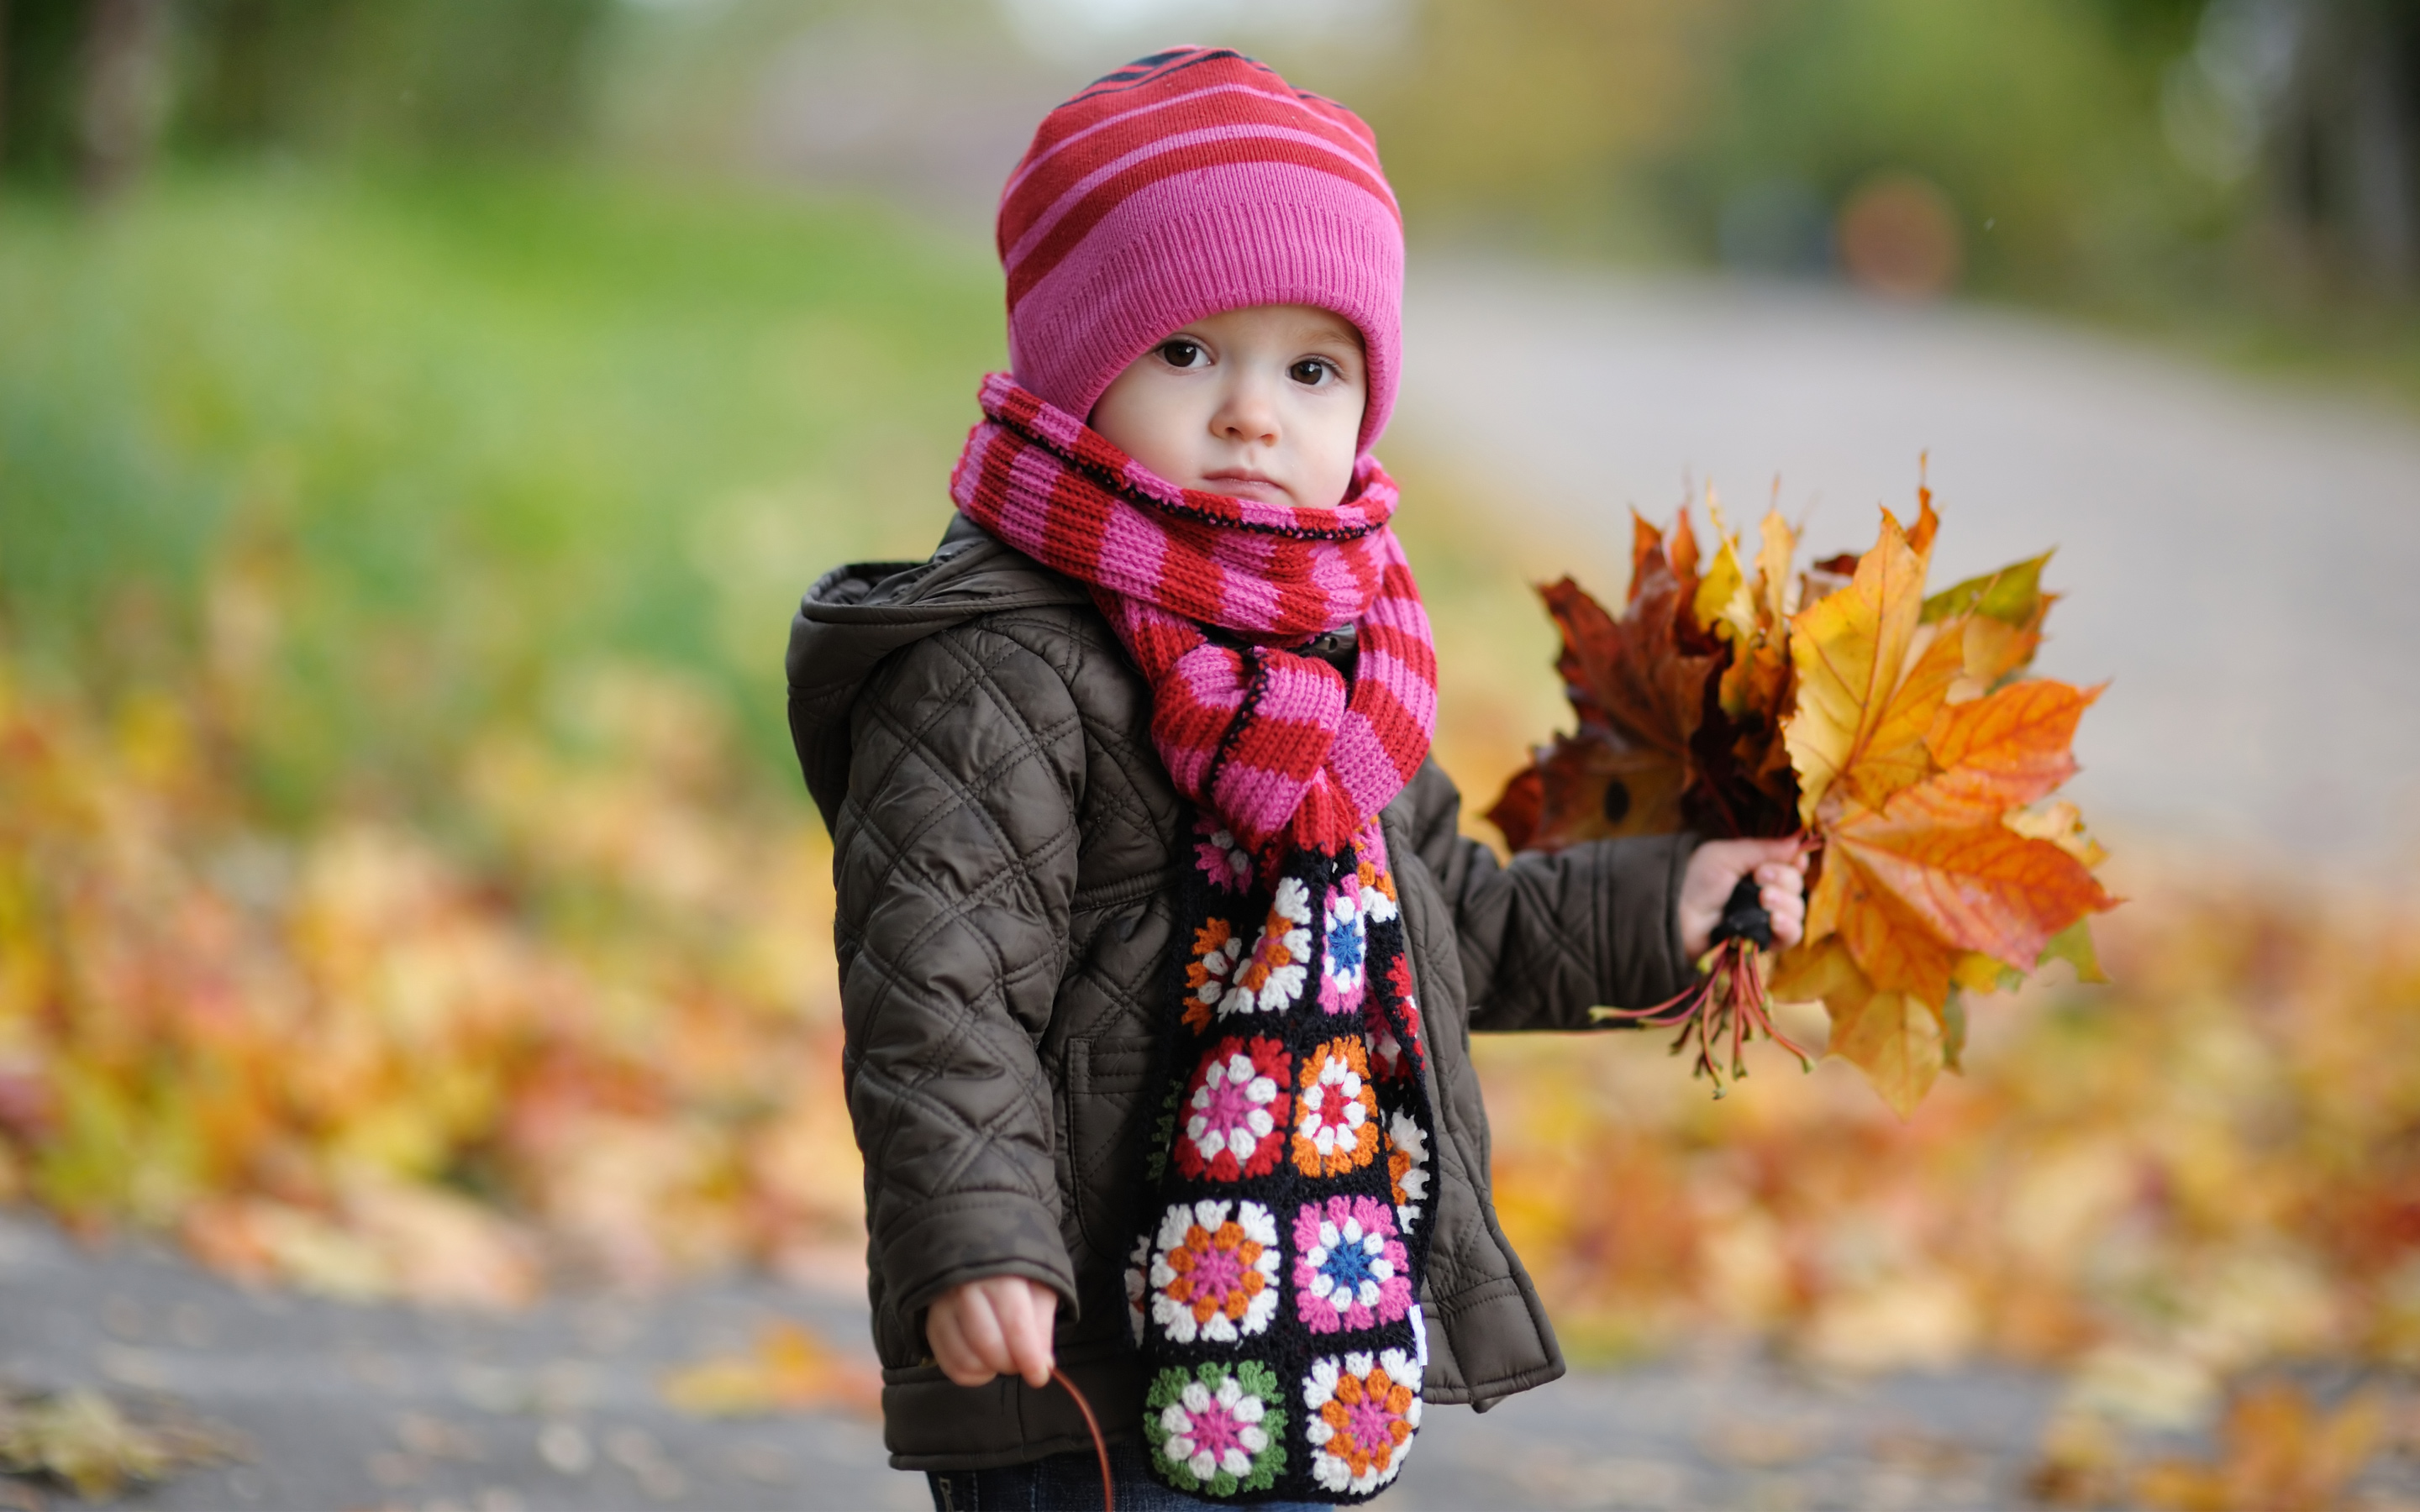 Cute Baby in Autumn1165110955 - Cute Baby in Autumn - Sleeping, Leaves, Cute, Baby, Autumn